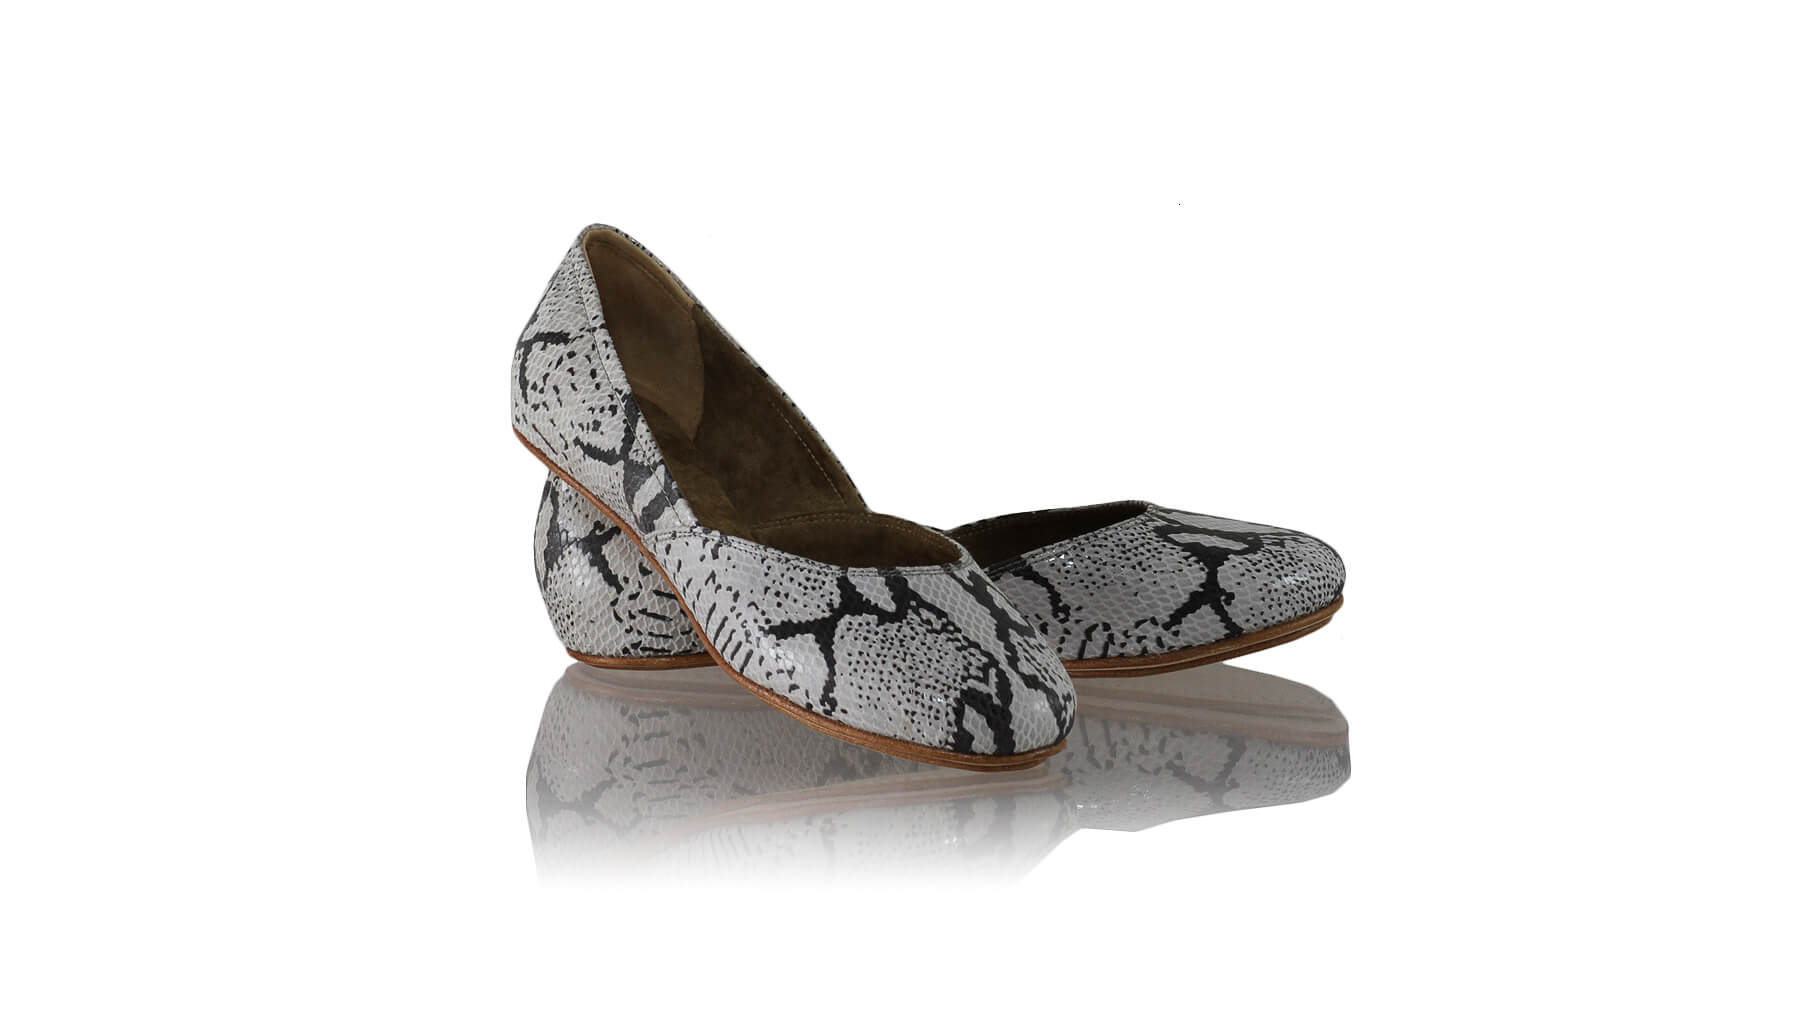 Leather-shoes-Punjab 5mm Ballet - Grey Cobra Print-flats ballet-NILUH DJELANTIK-NILUH DJELANTIK